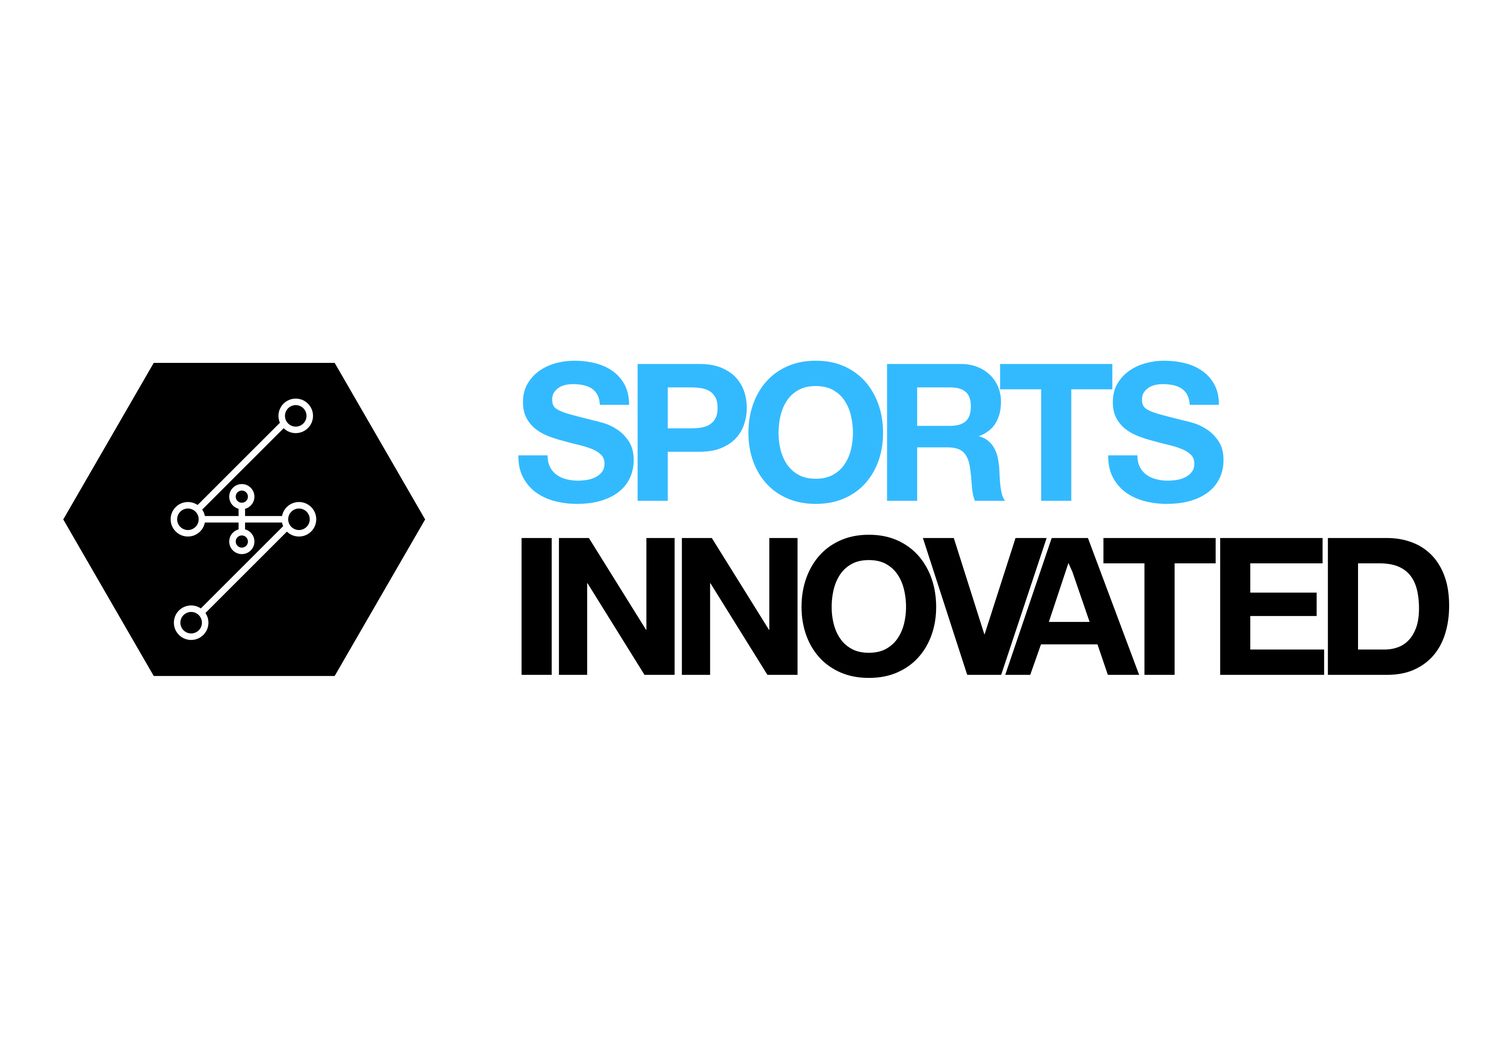 Sports Innovated